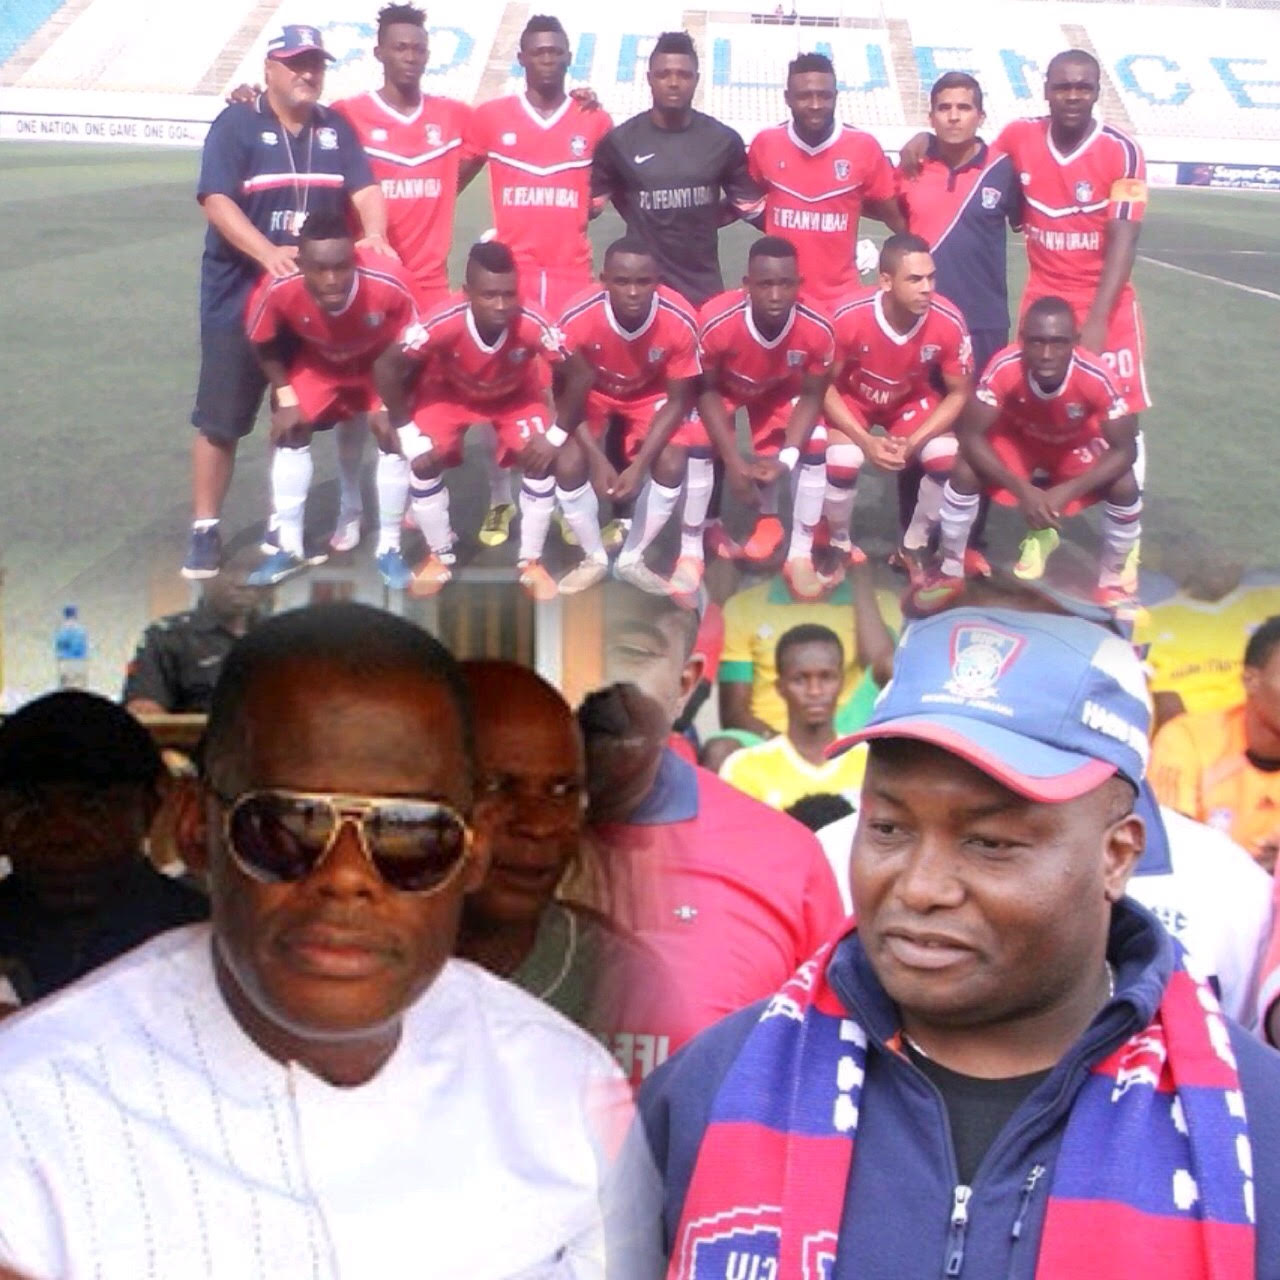 Gabros Int' l Vs FC Ifeanyiubah: Chukwuma Moves To Reclaim Club From Ubah